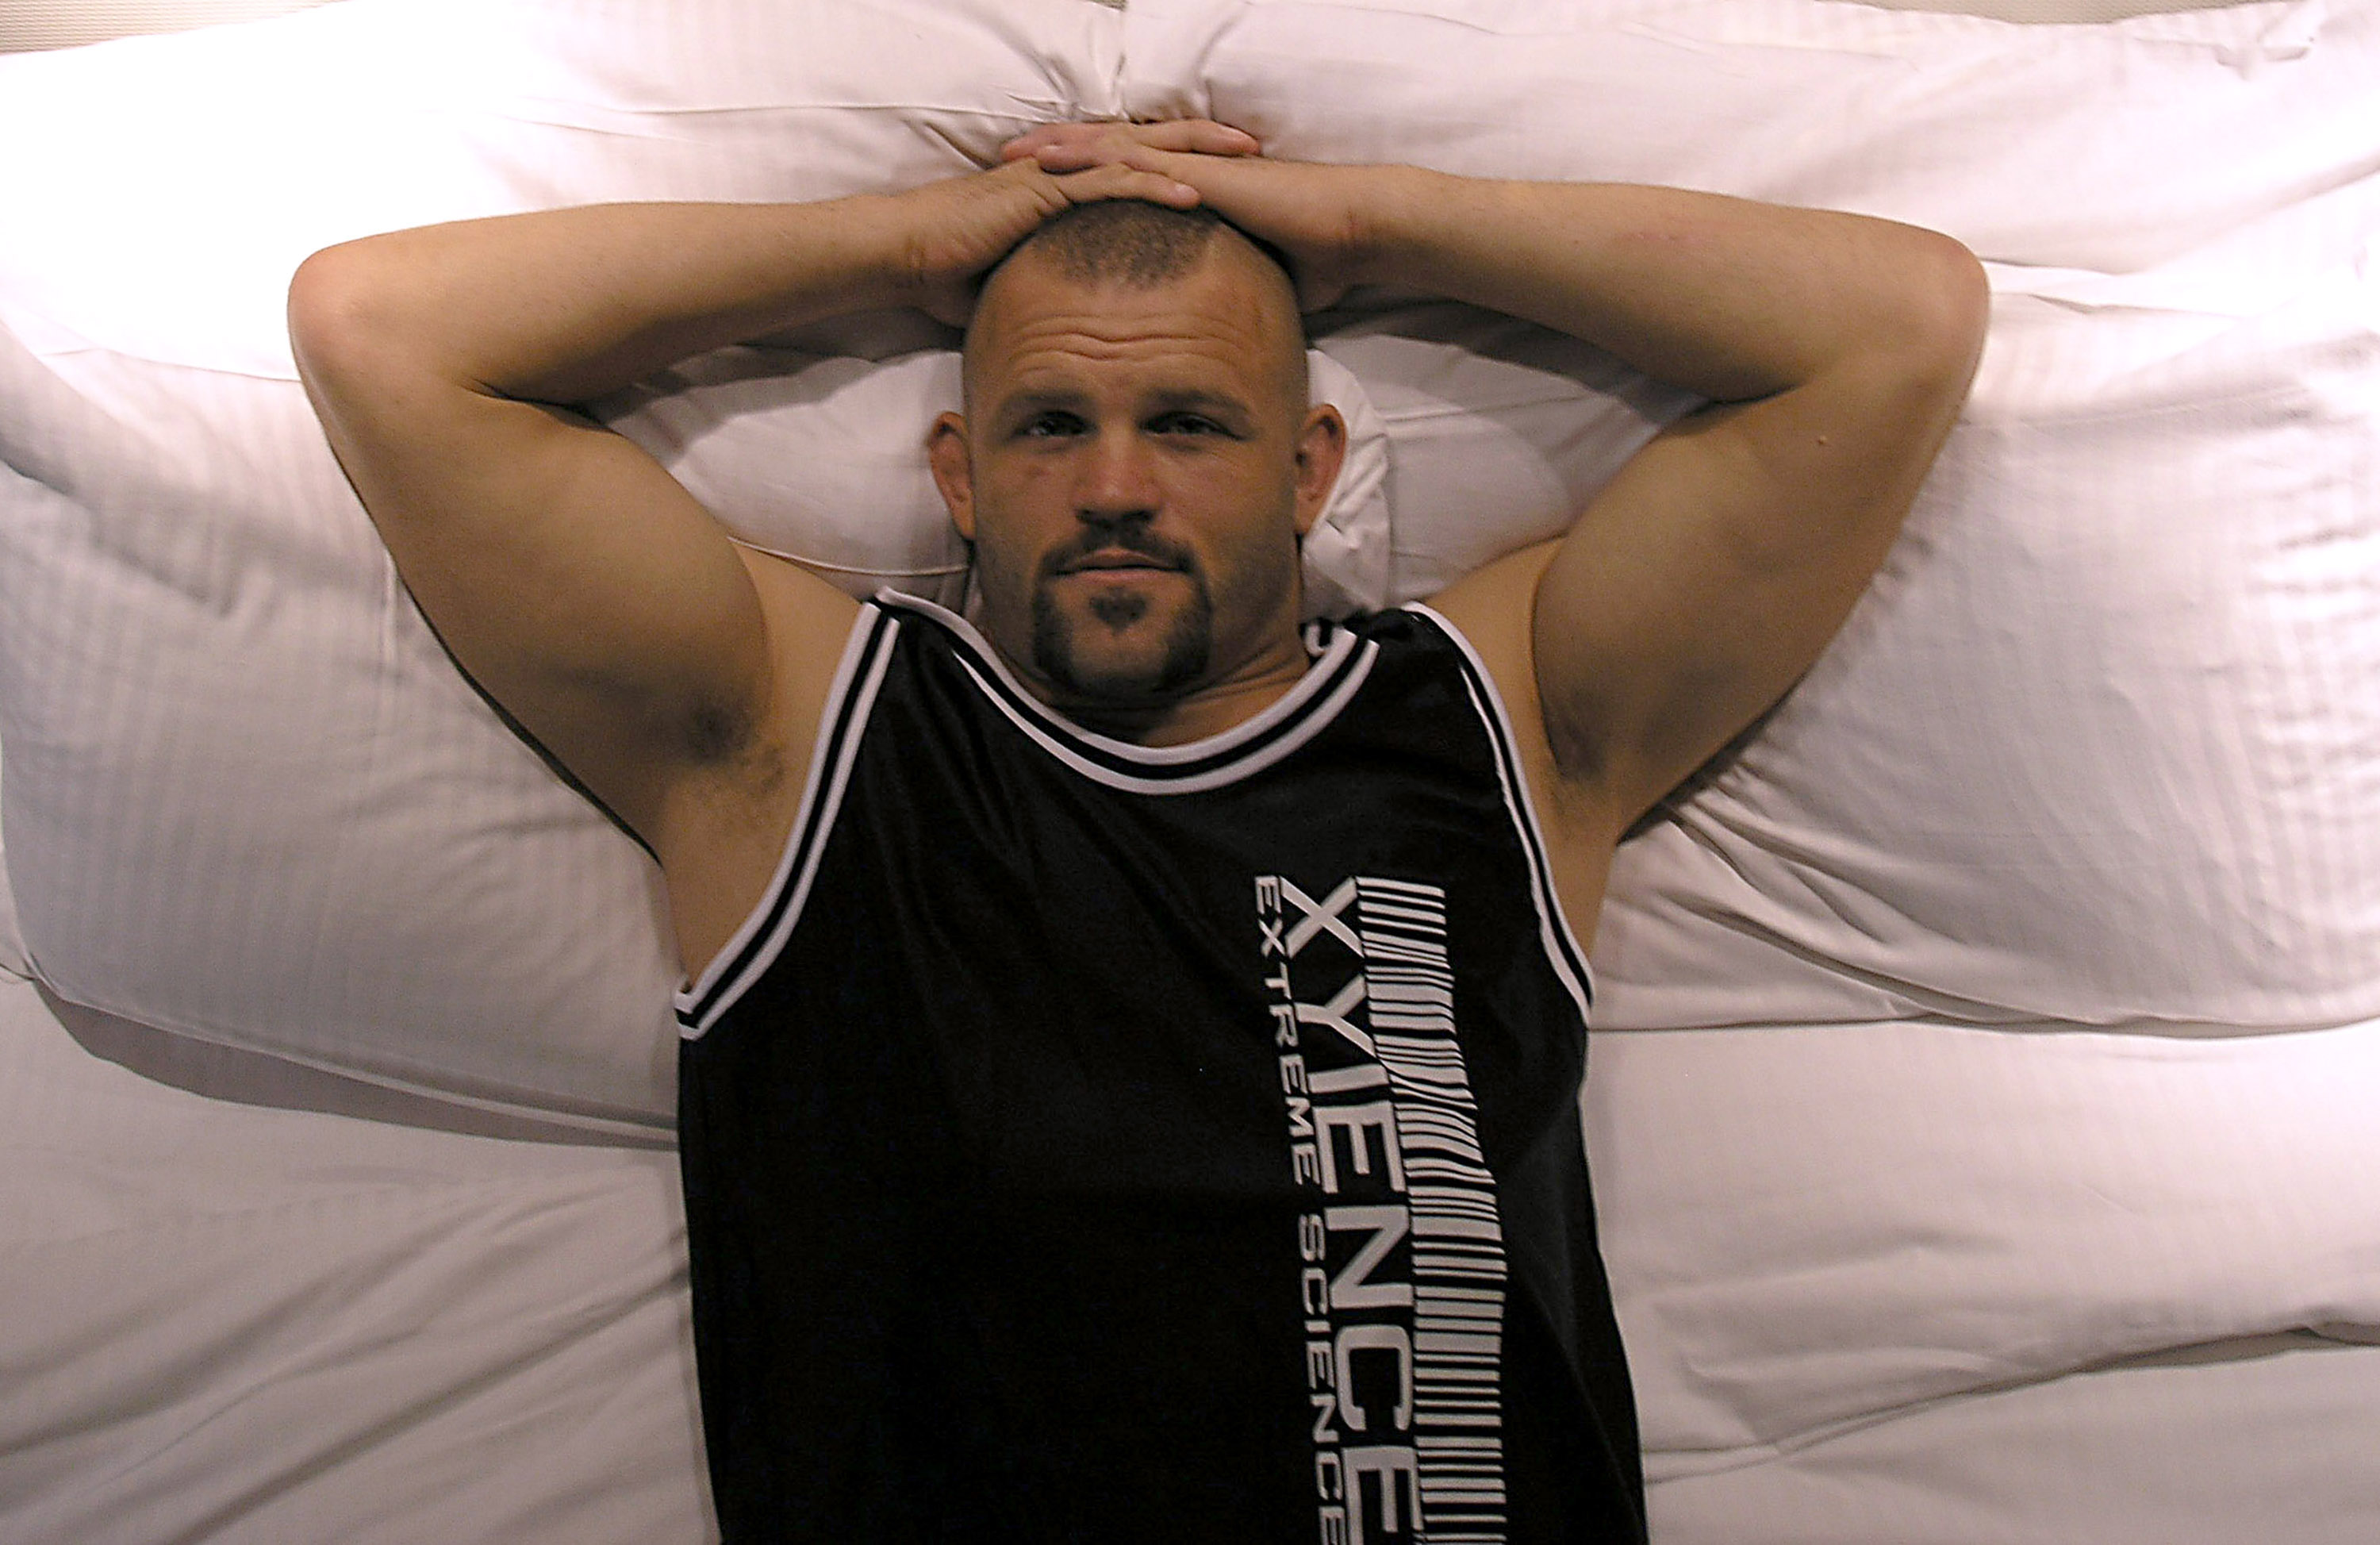 UFC Chuck Liddell's Official After Party at Studio 54 - December 30, 2006